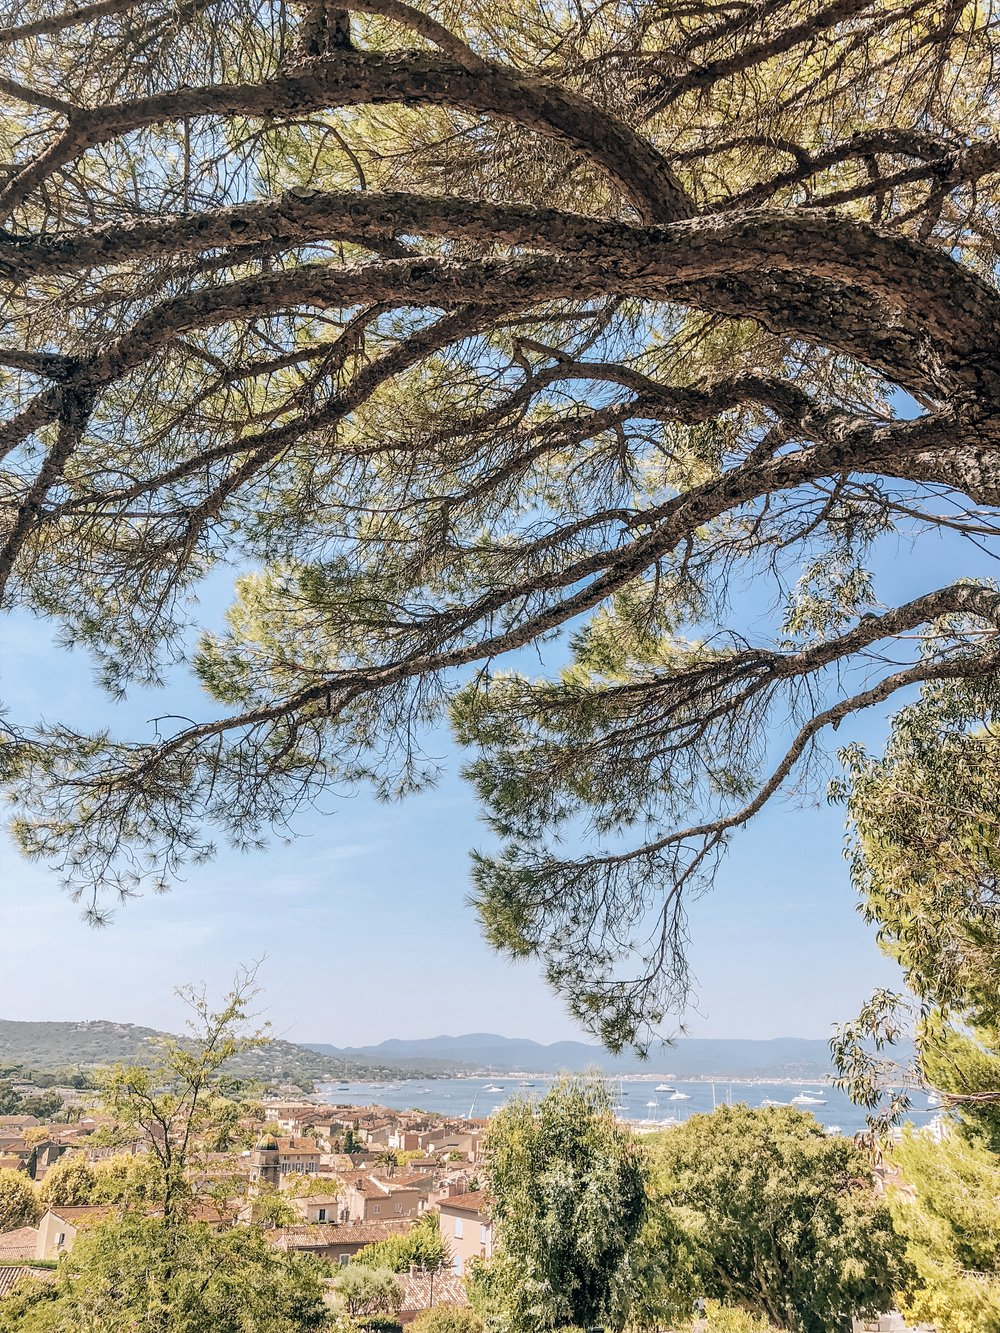 Scenic views of the French Riviera